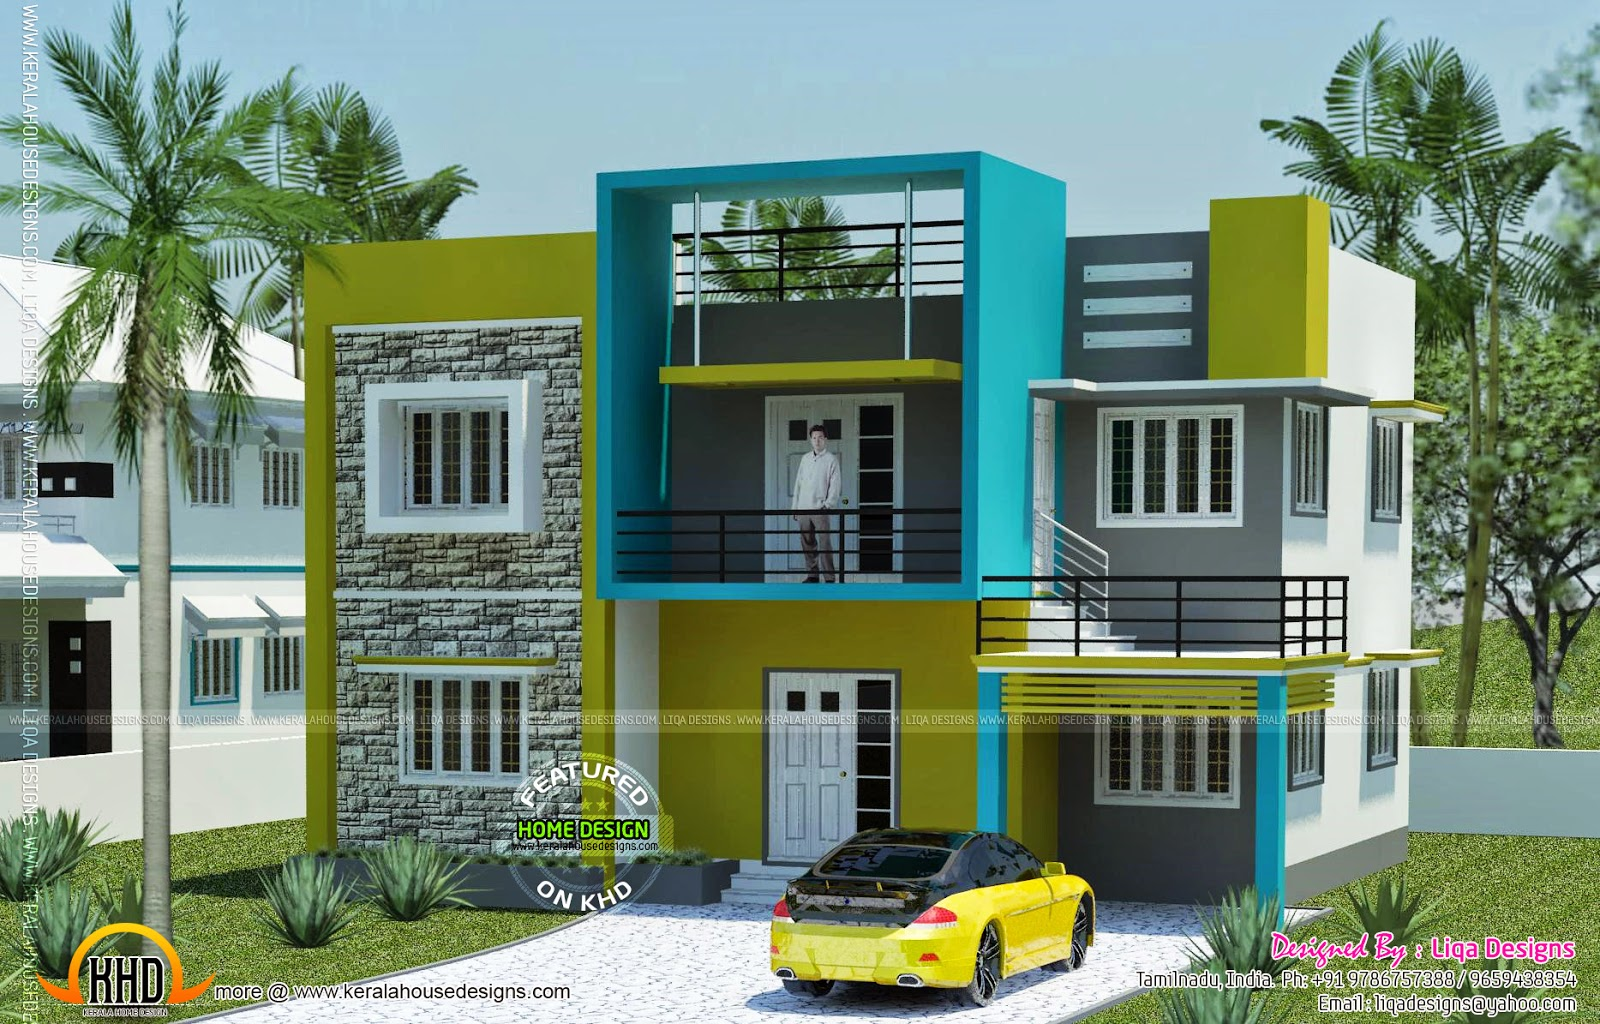 Contemporary house in tamilnadu kerala home design and for Tamilnadu home design photos